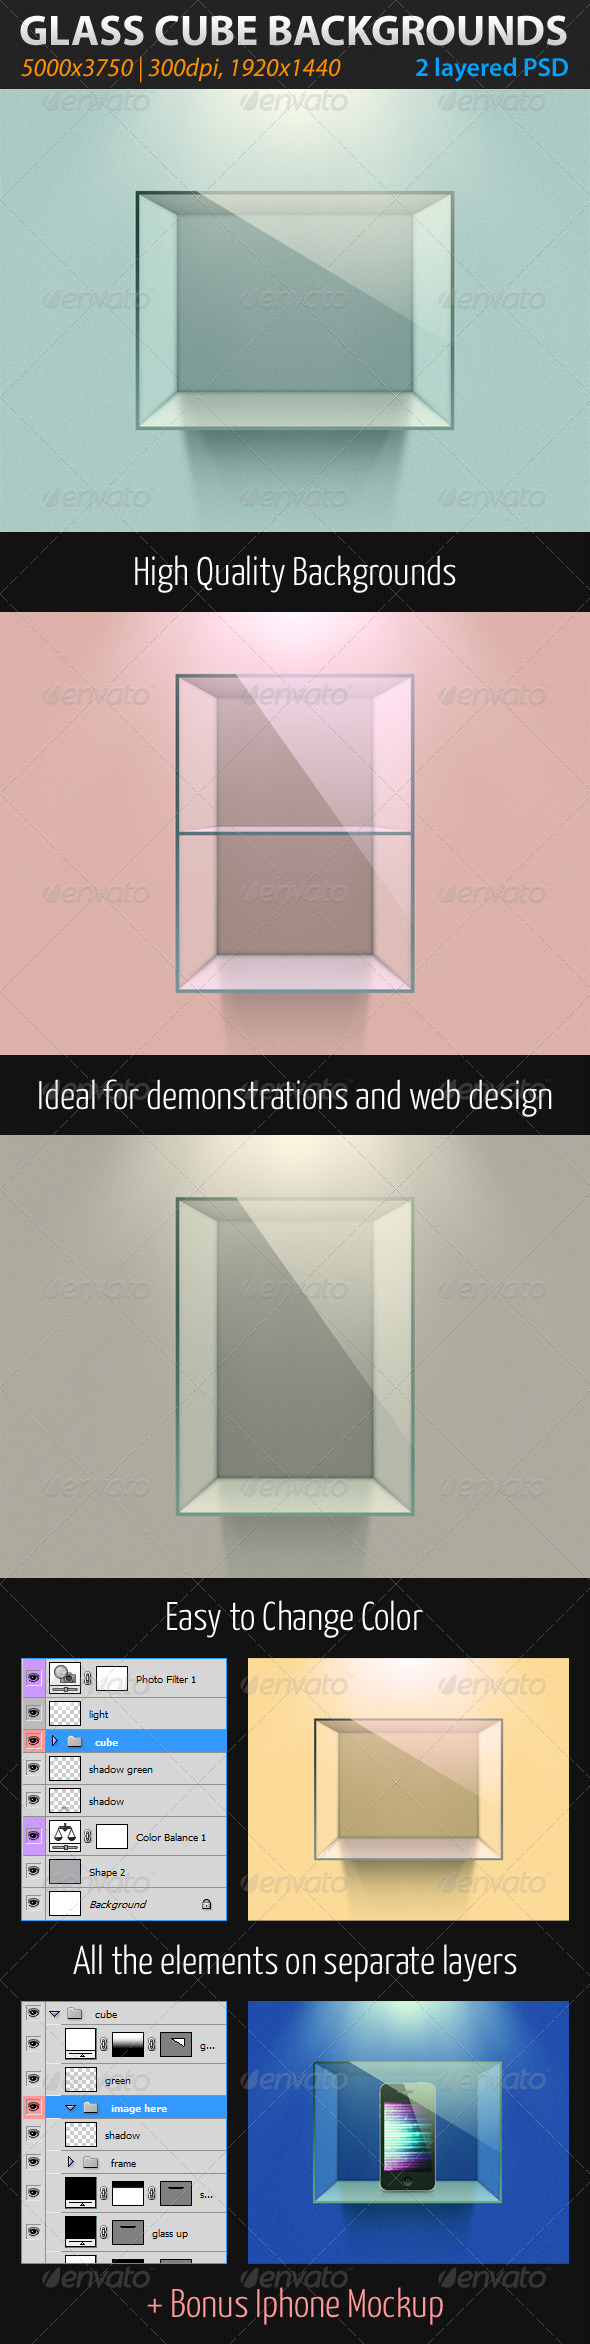 Glass Cube Backgrounds - Abstract Backgrounds